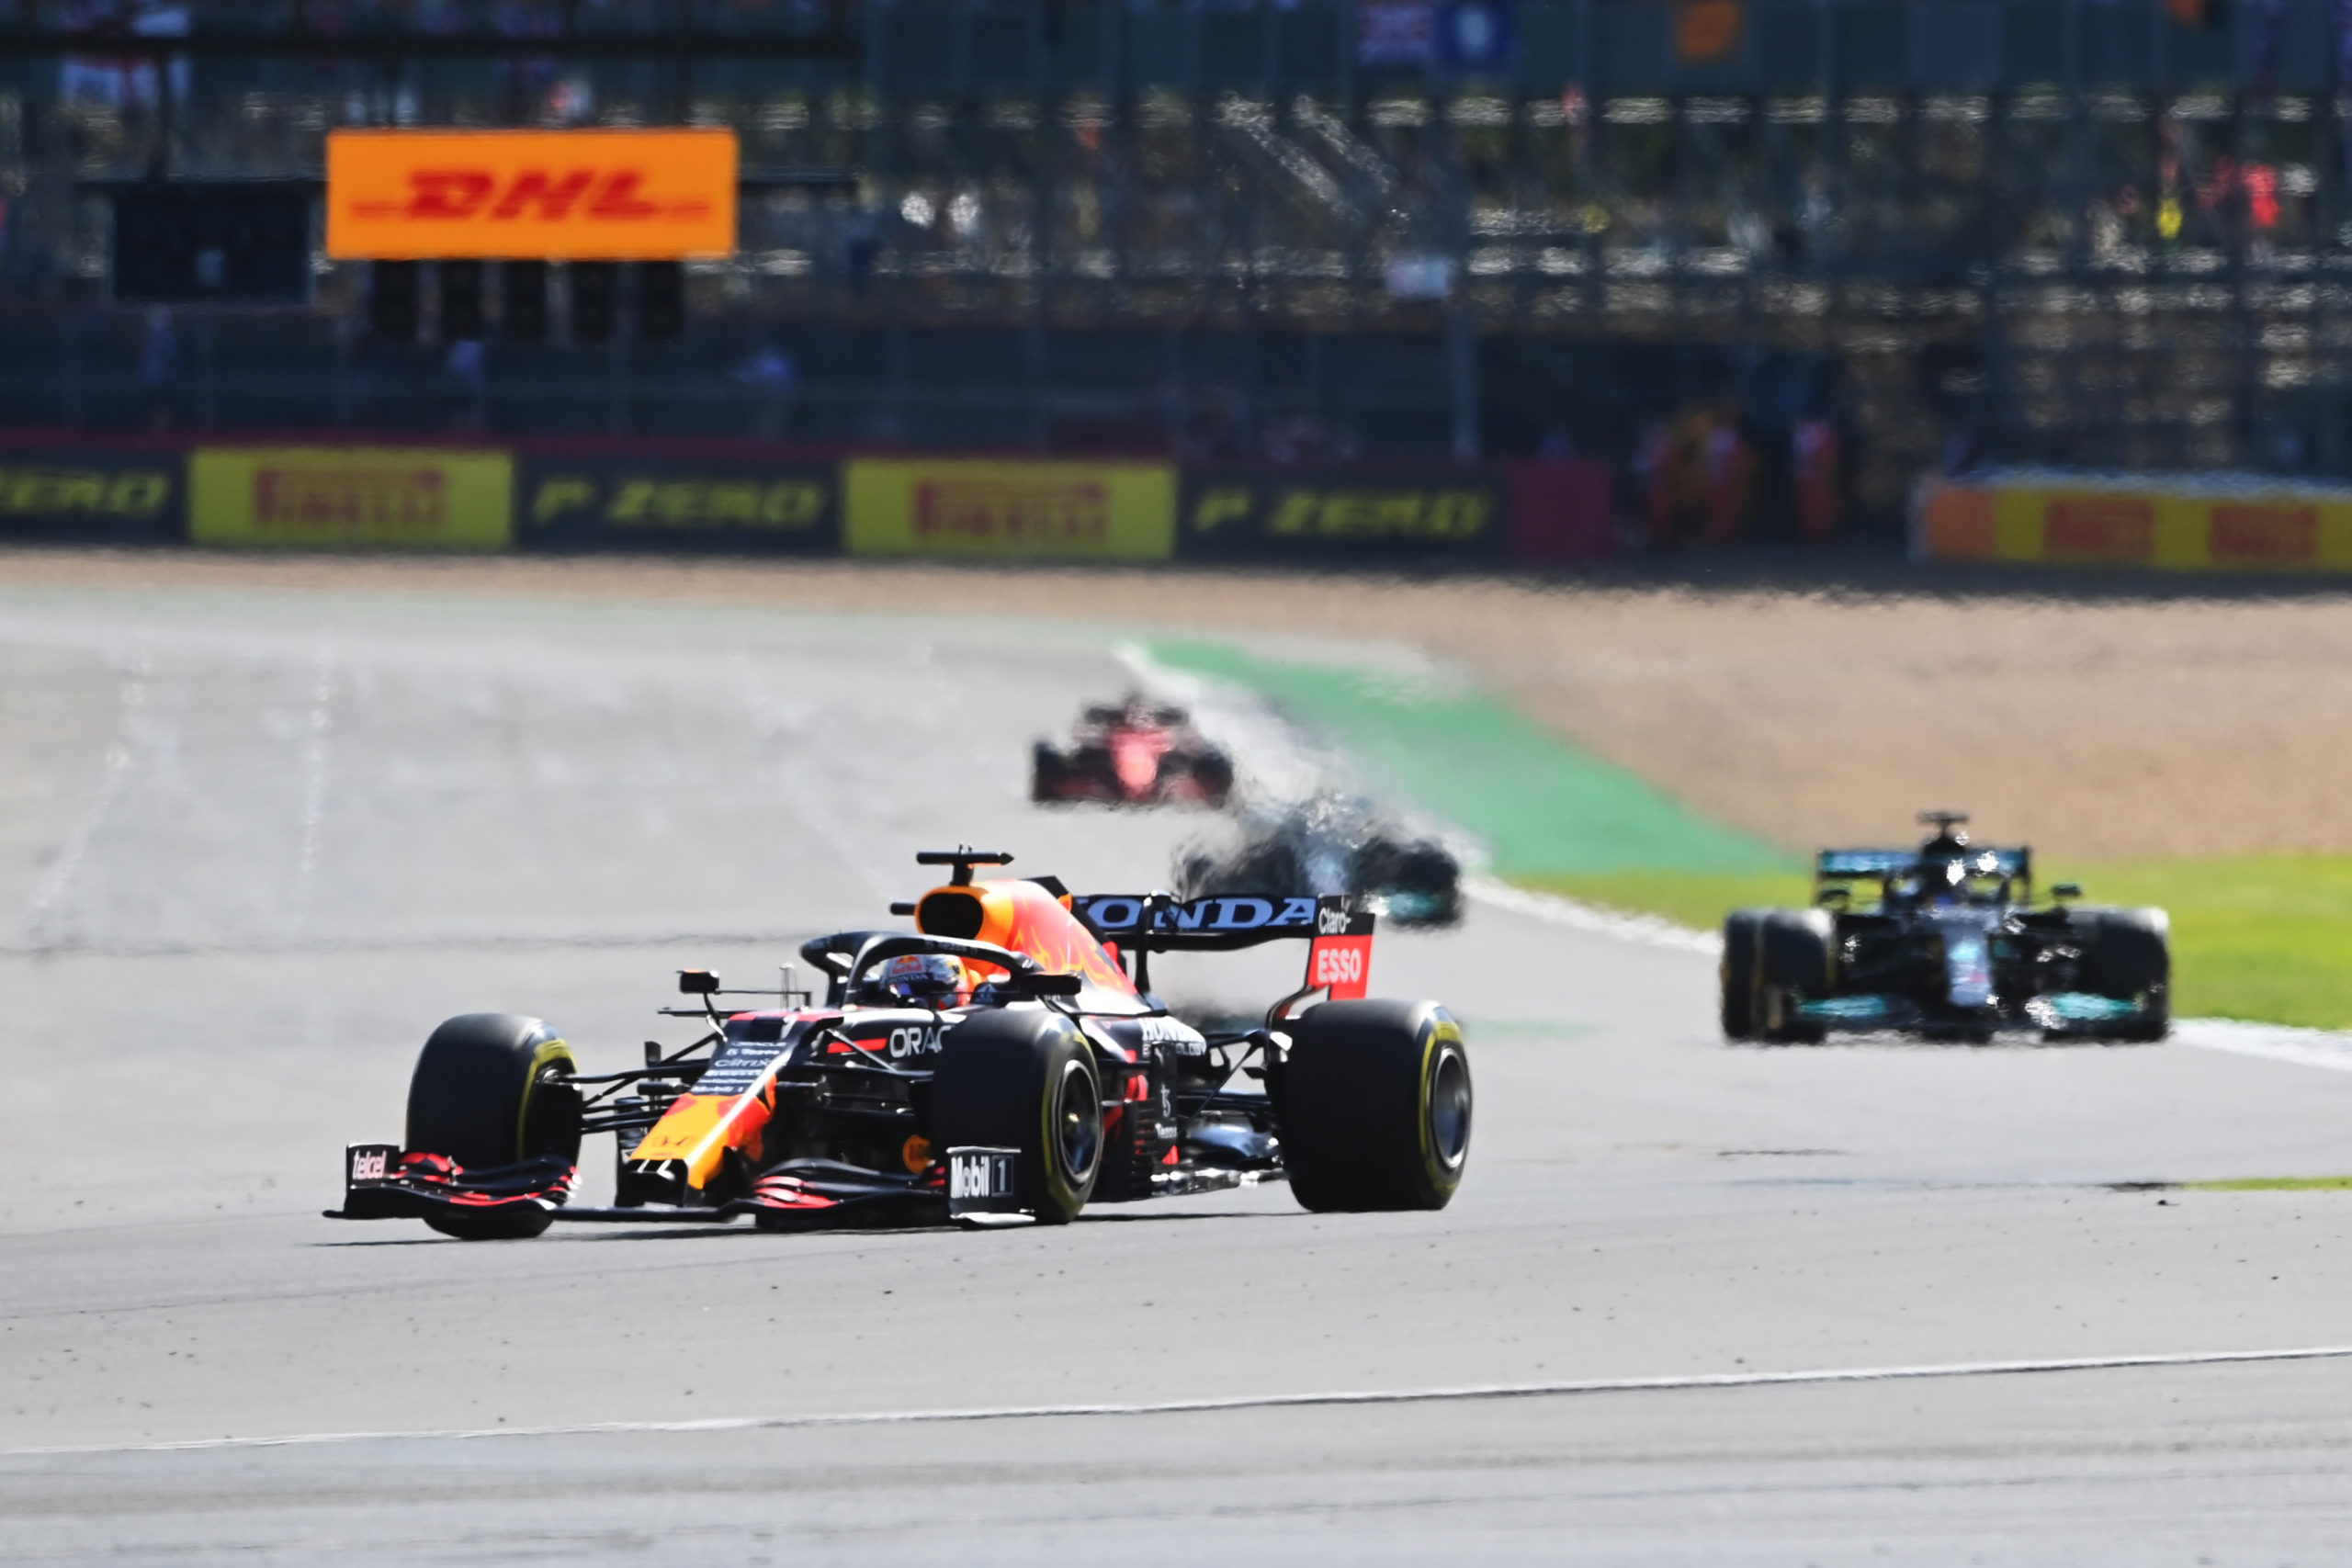 NORTHAMPTON, ENGLAND - JULY 17: Max Verstappen of the Netherlands driving the (33) Red Bull Racing RB16B Honda leads during the Sprint for the F1 Grand Prix of Great Britain at Silverstone on July 17, 2021 in Northampton, England. (Photo by Michael Regan/Getty Images) // Getty Images / Red Bull Content Pool  // SI202107170317 // Usage for editorial use only //